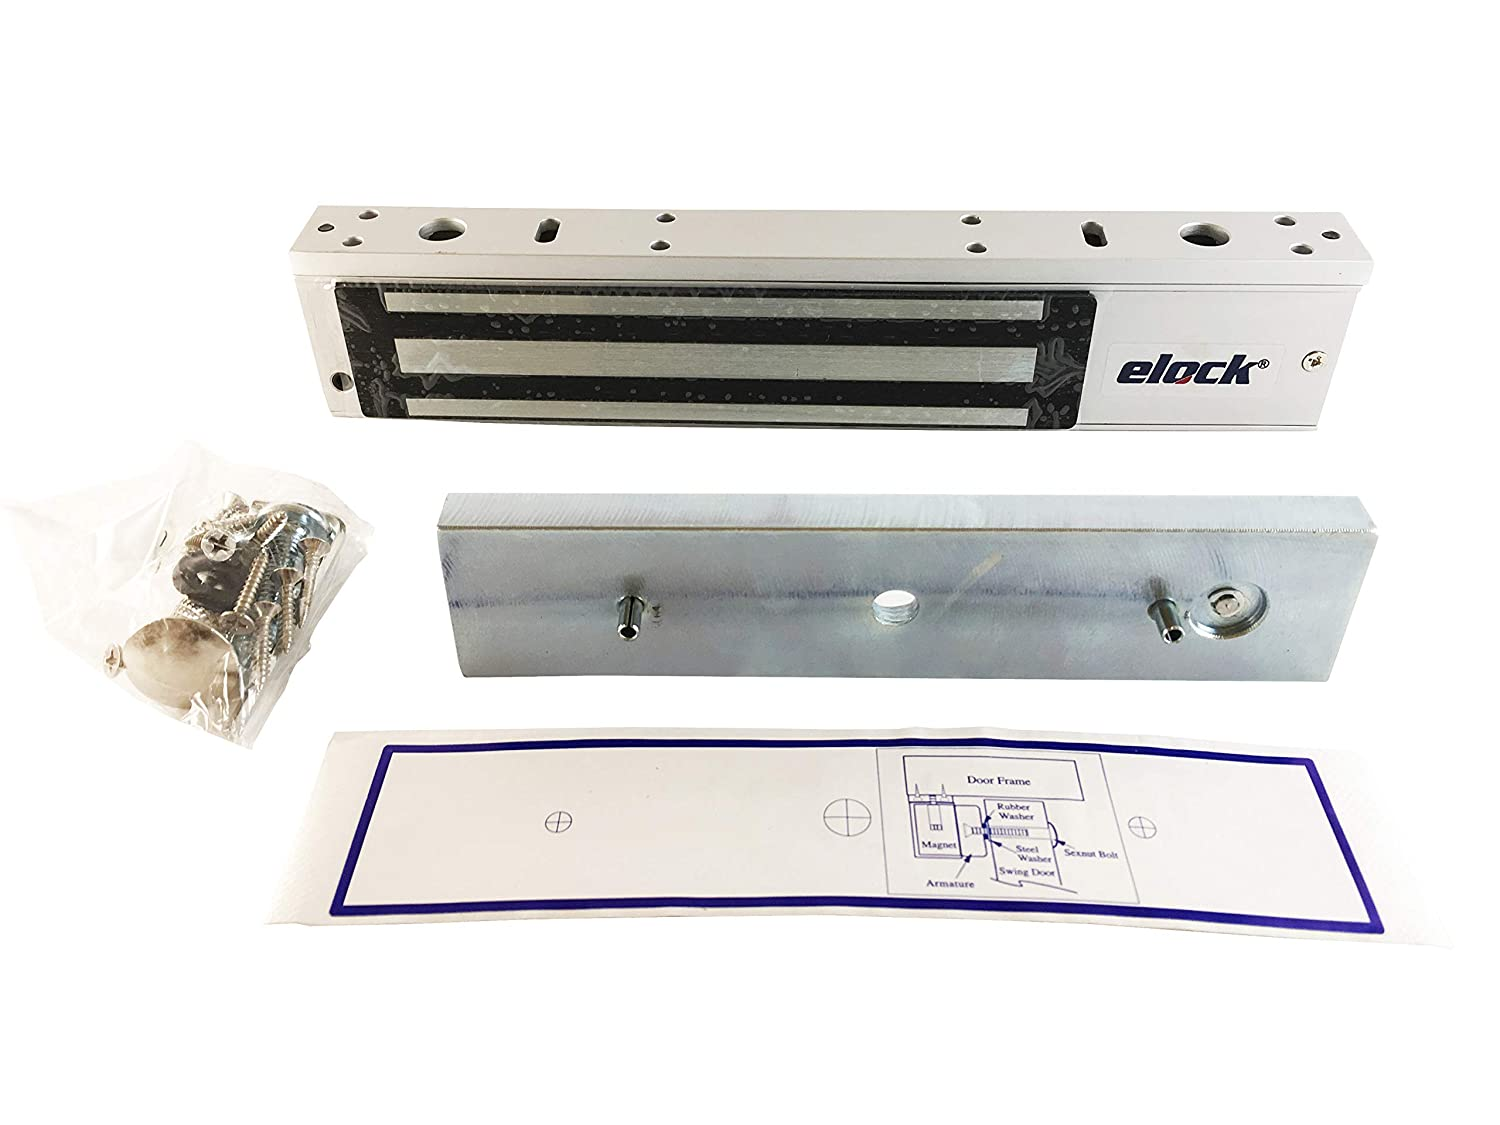 Elock 600lbs Electromagnetic Lock//Maglock with LED Sdn Bhd M 12//24 VDC,UL Certified Kyodensha Technologies